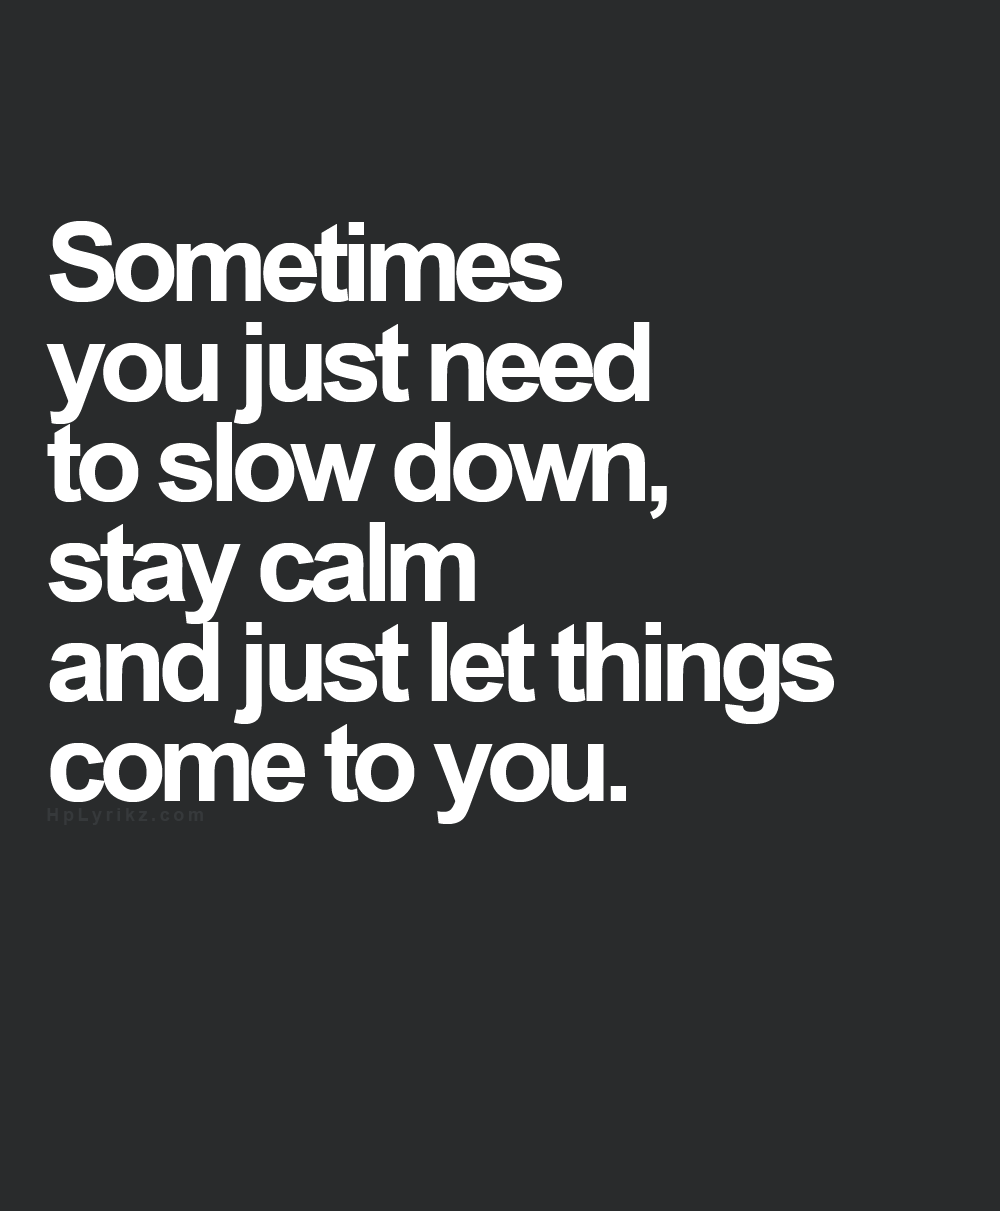 Inspirational Quotes On Pinterest: Best 25+ Slow Down Ideas On Pinterest